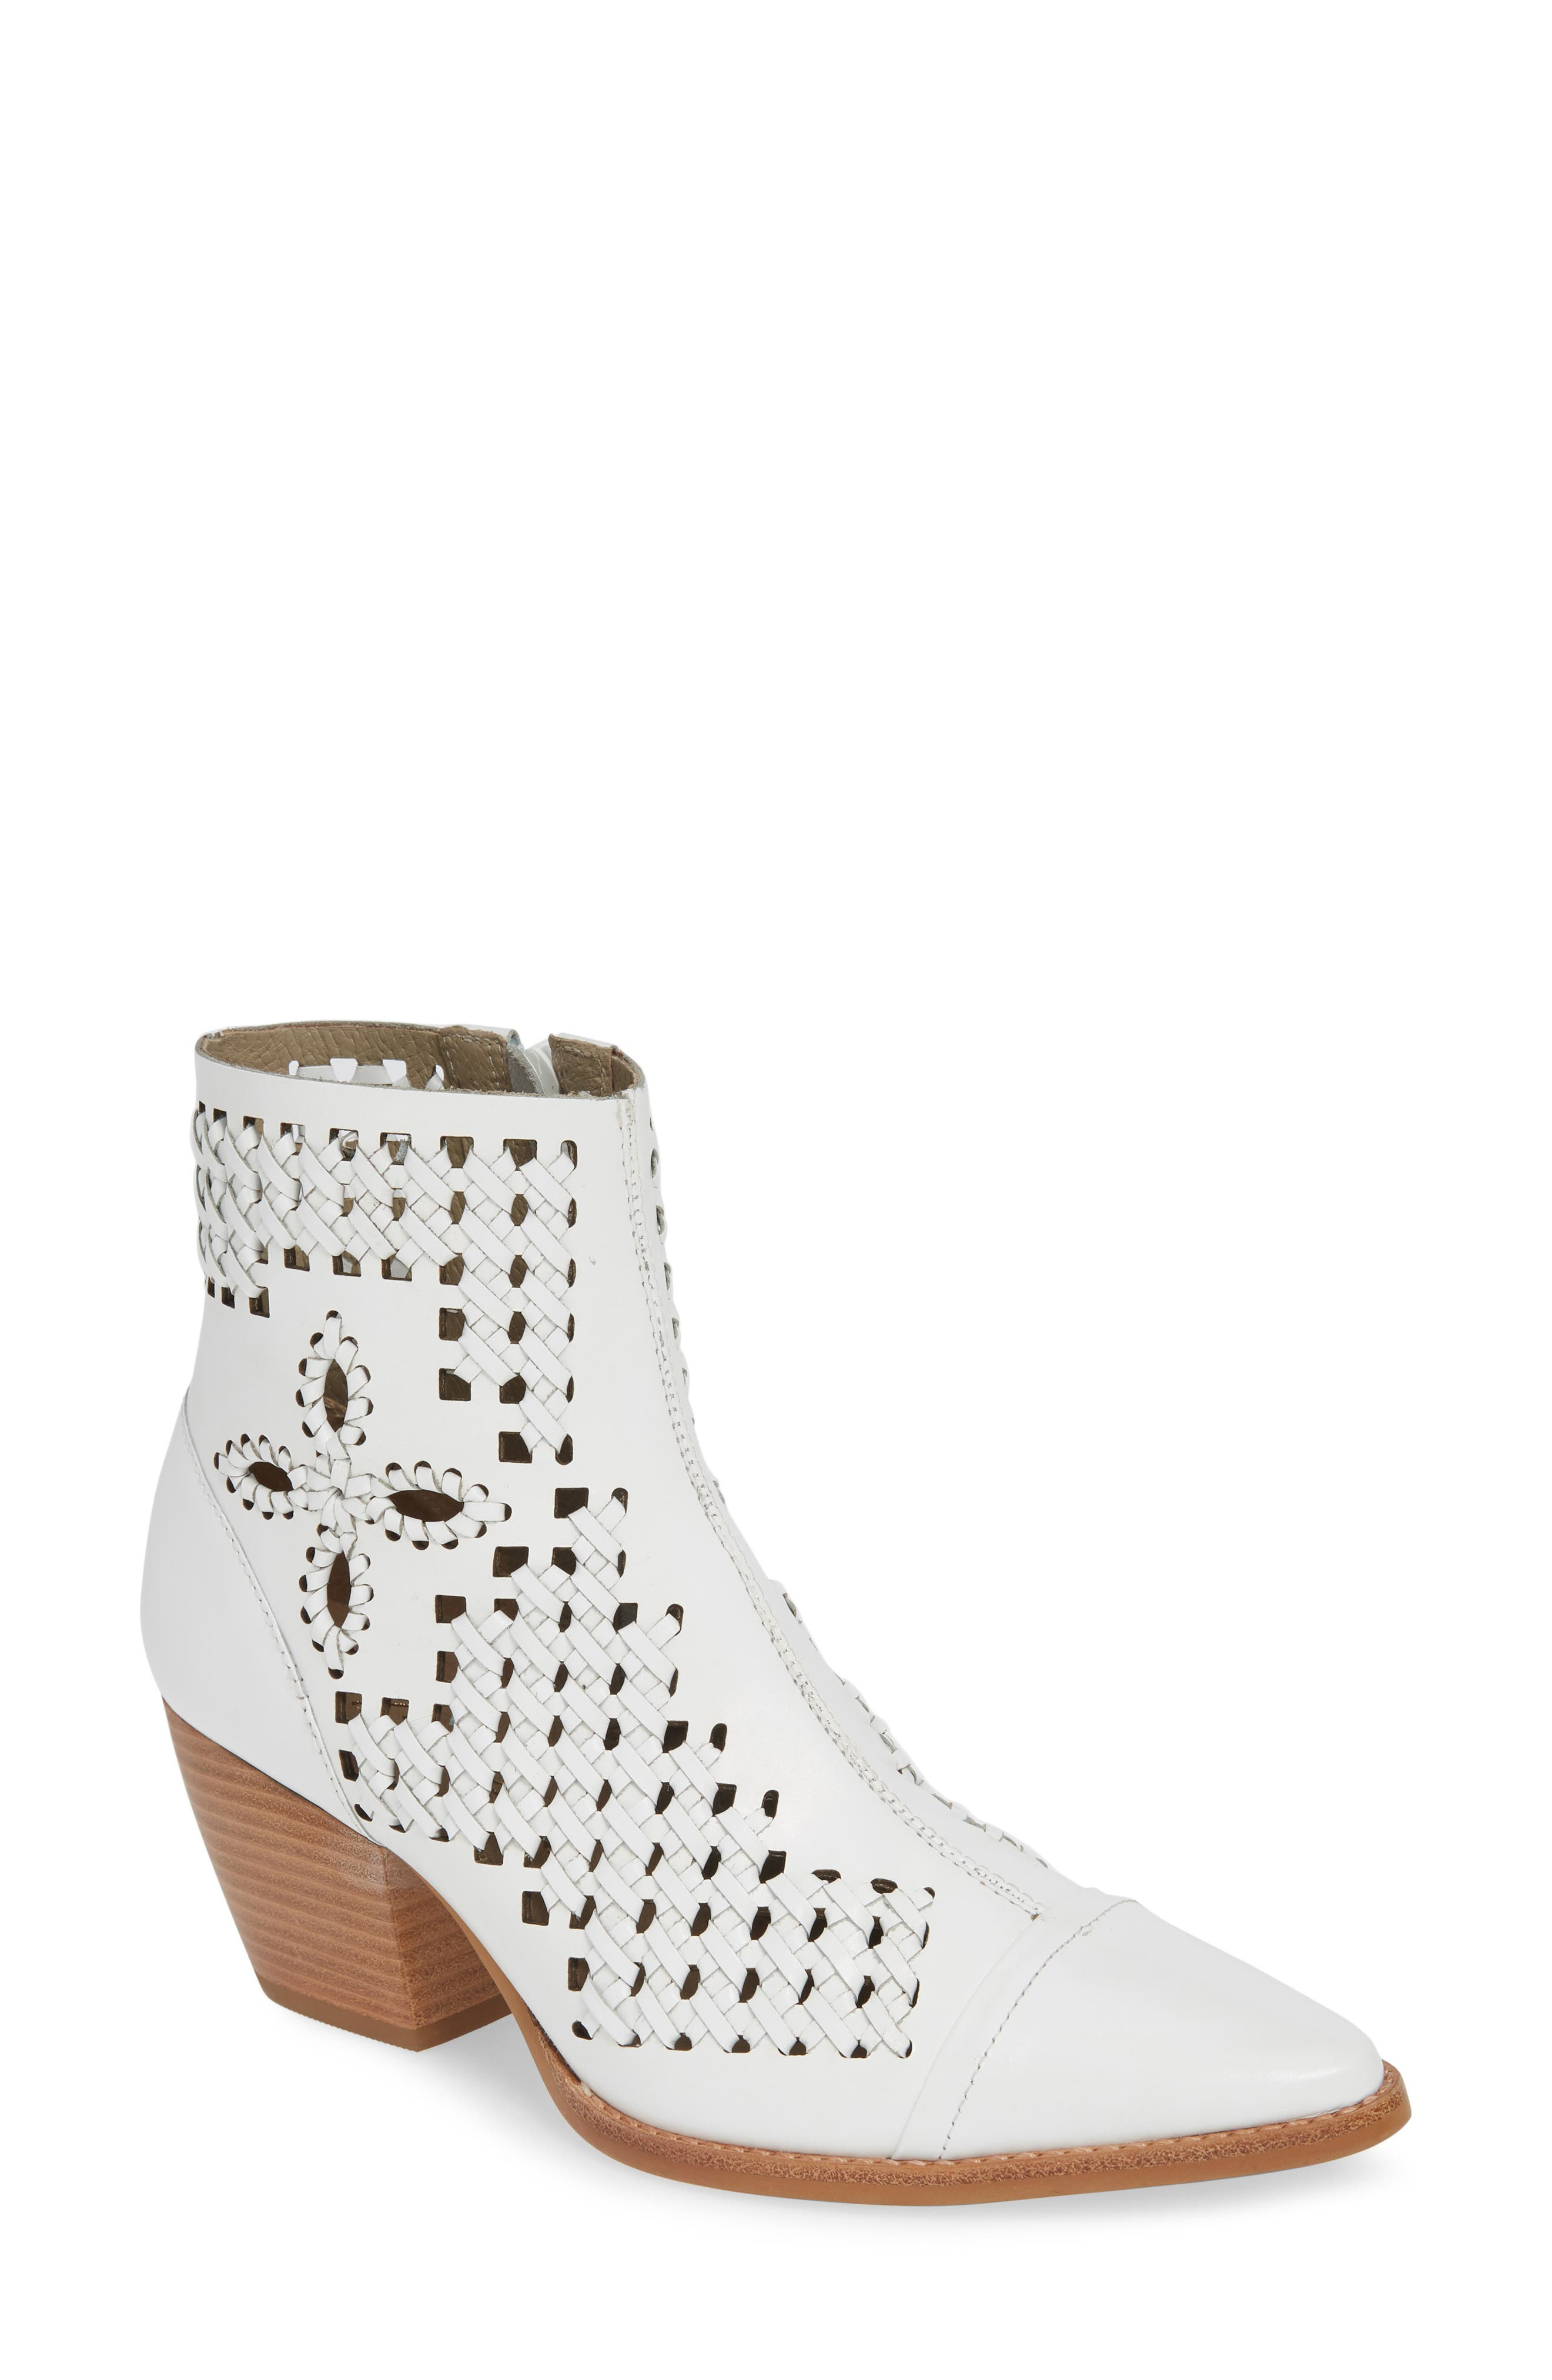 Matisse Bello Woven Pointy Toe Bootie- White